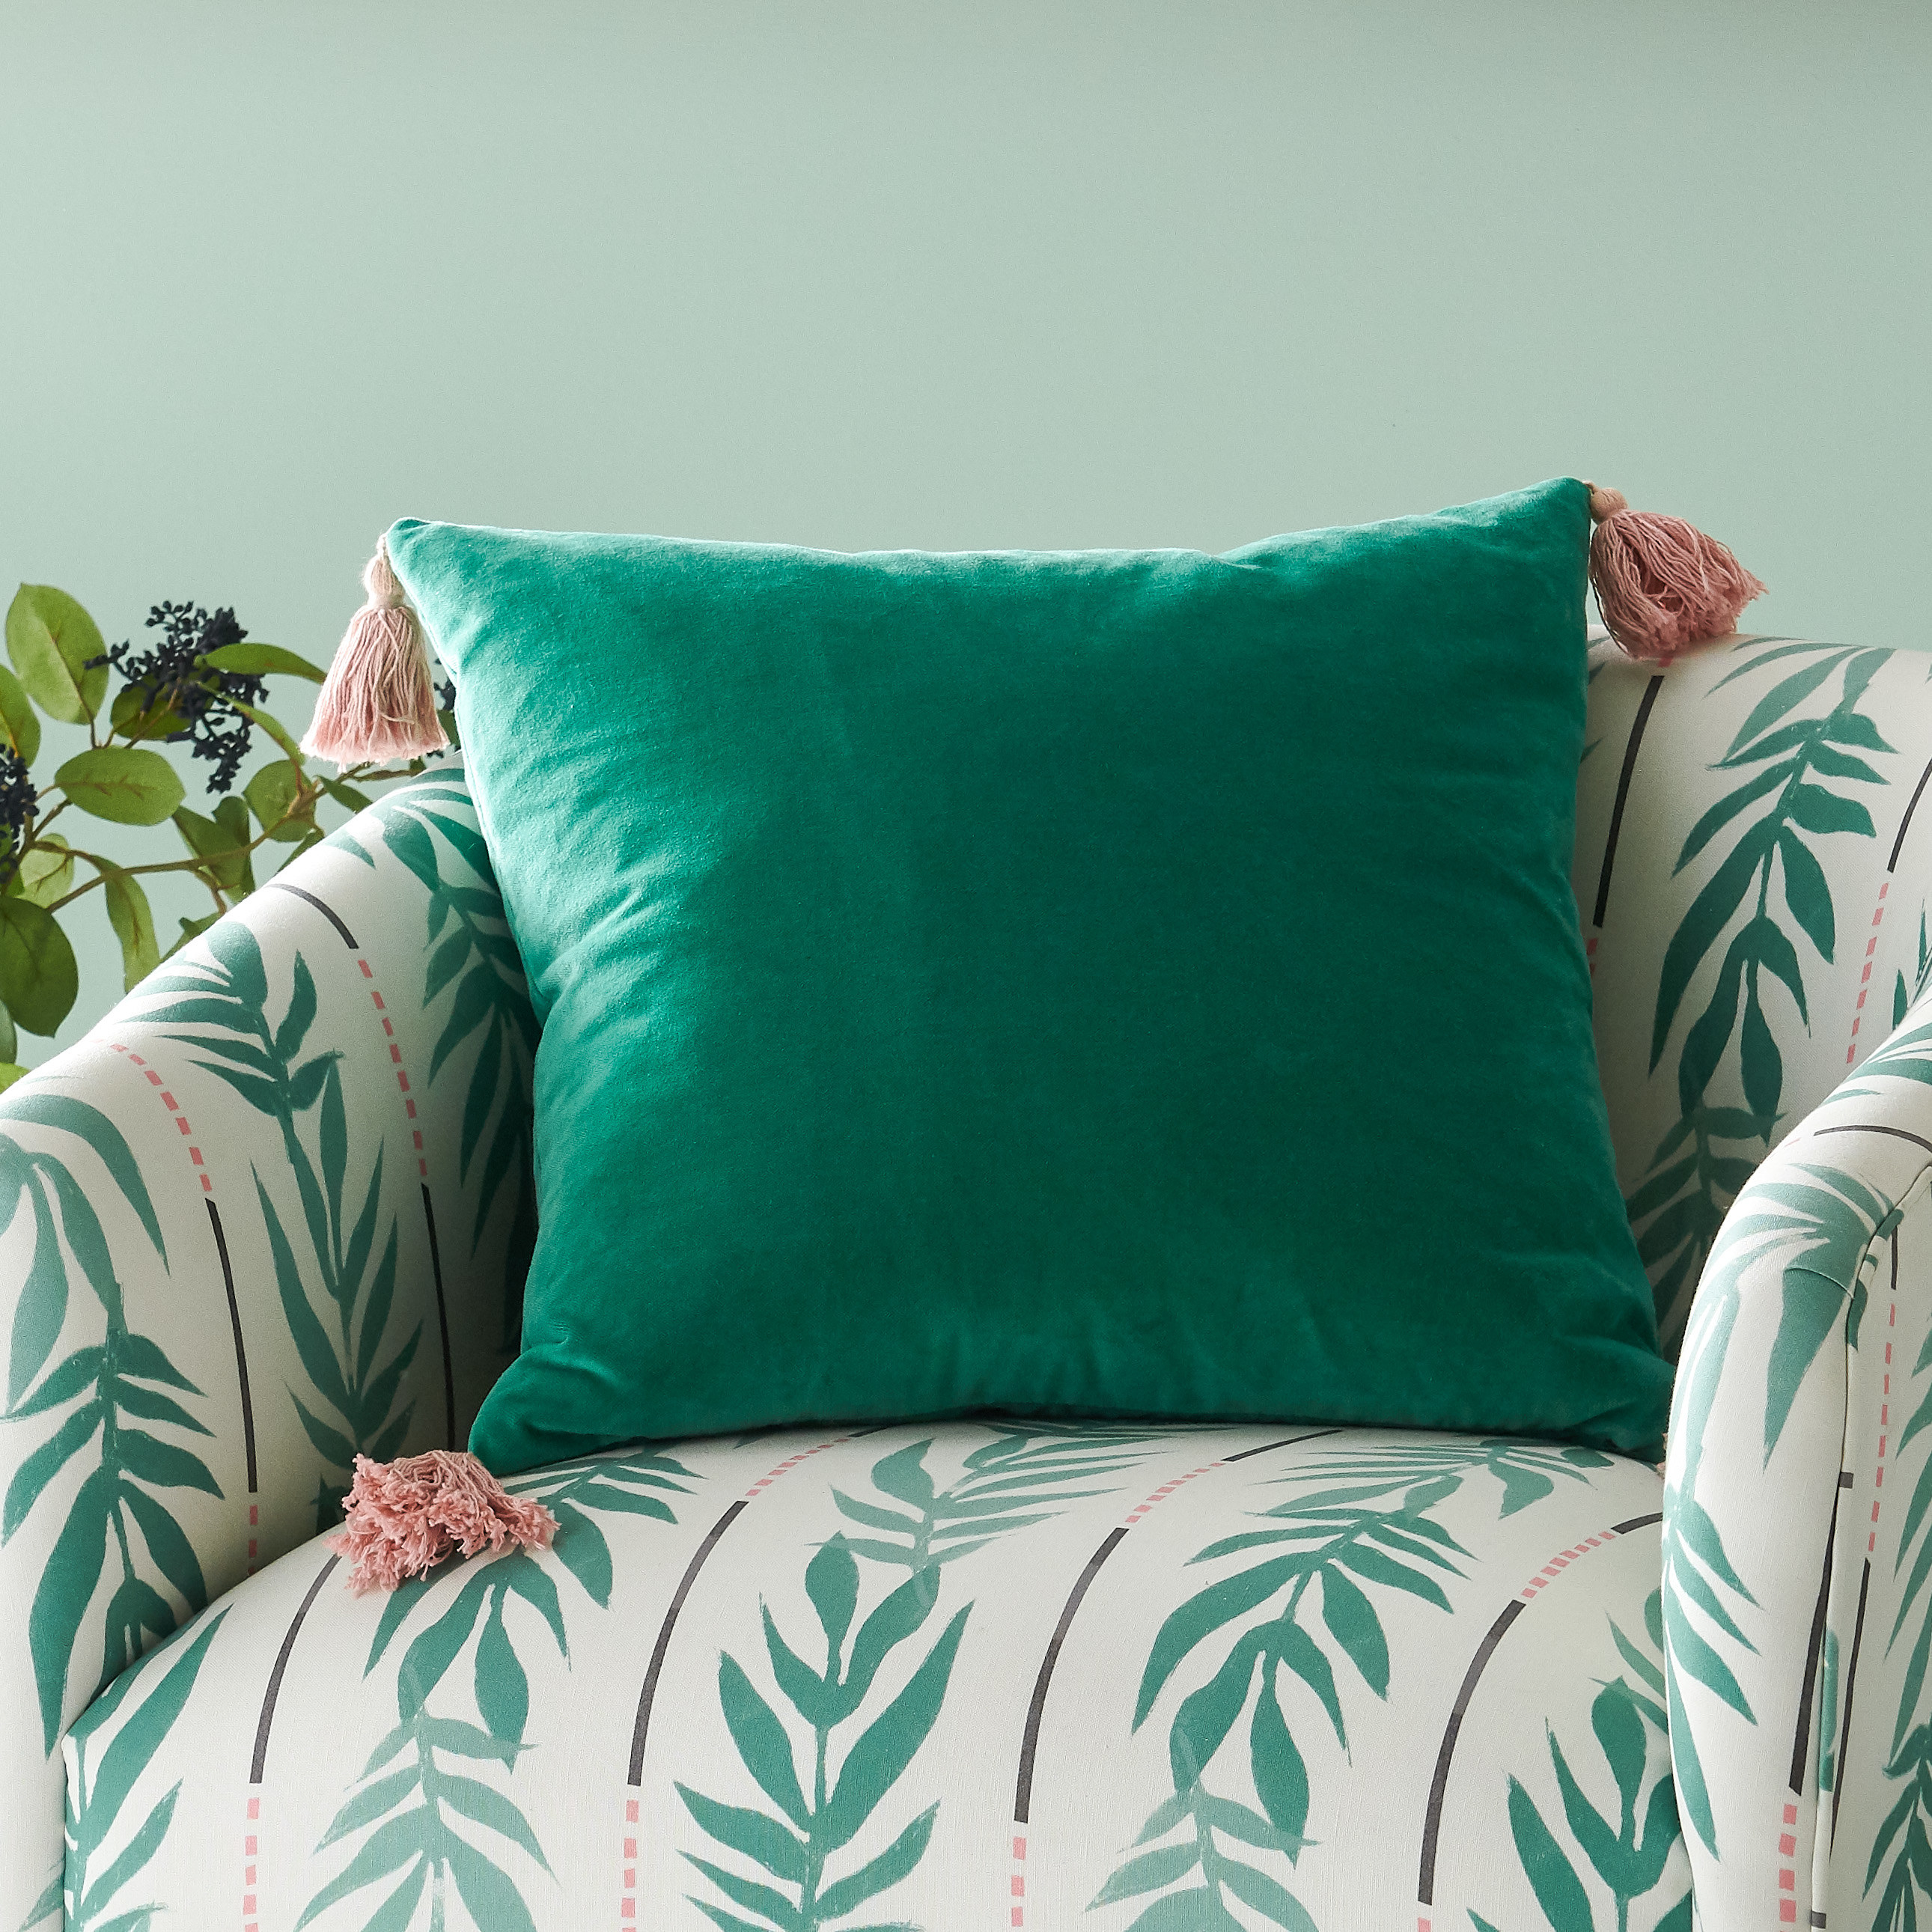 The pillow in the color Guatemalan Green